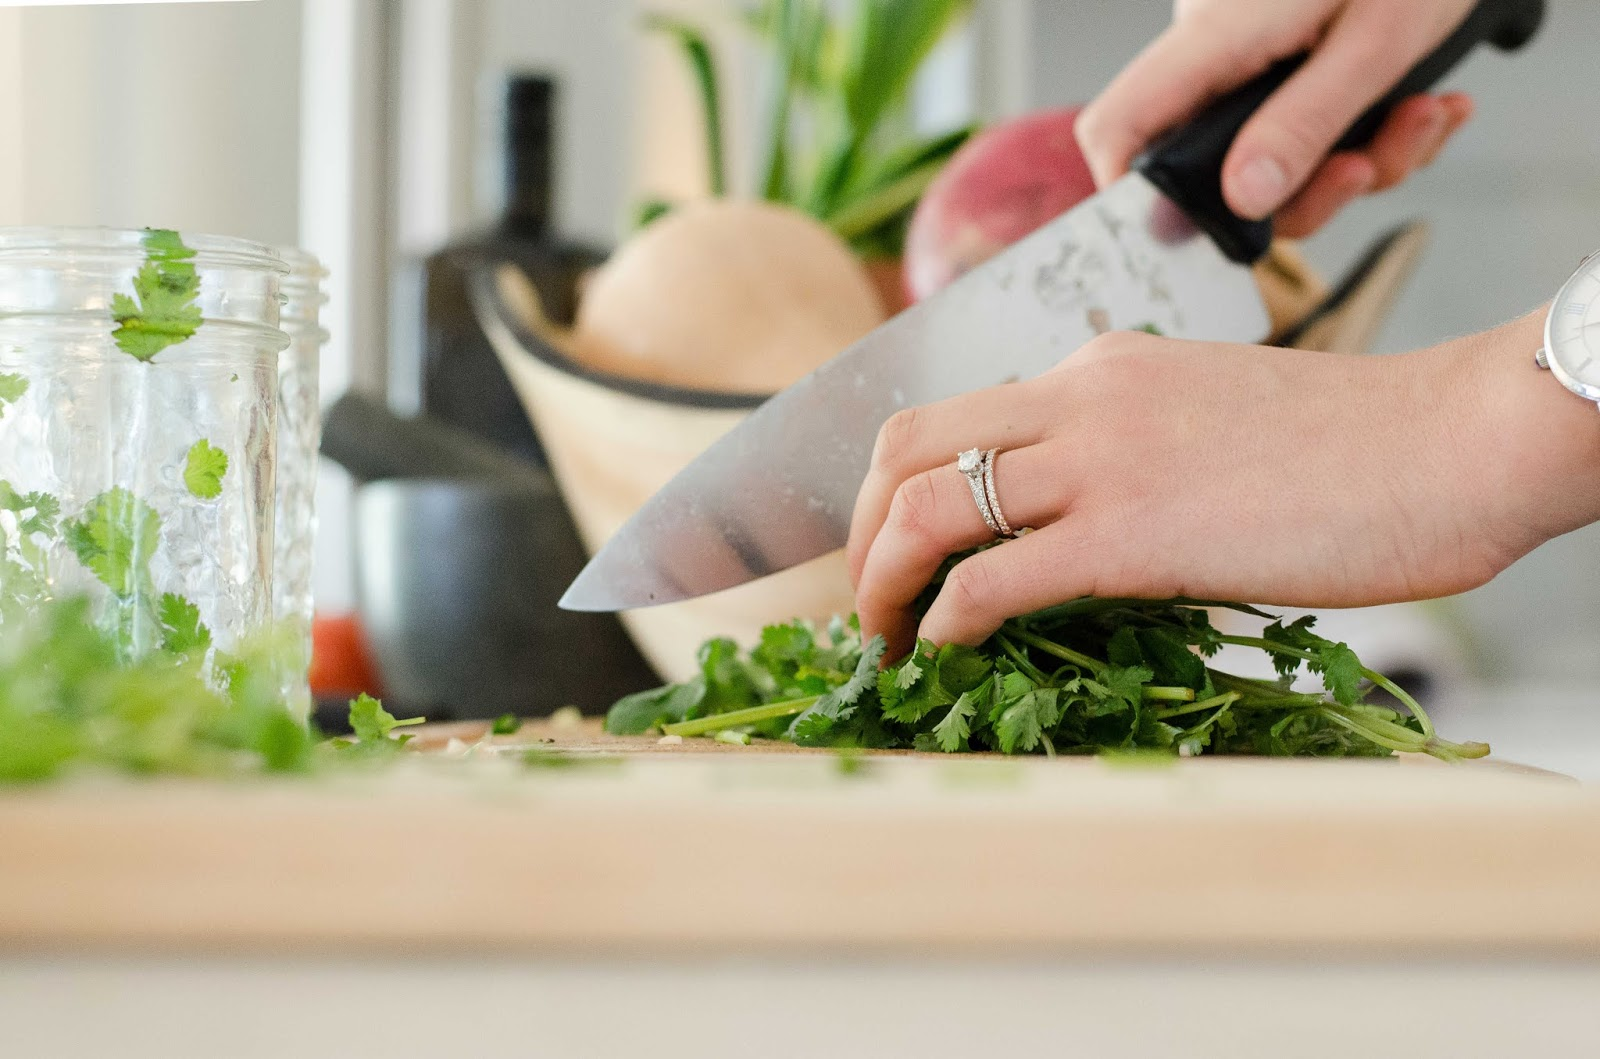 cook at home and save money